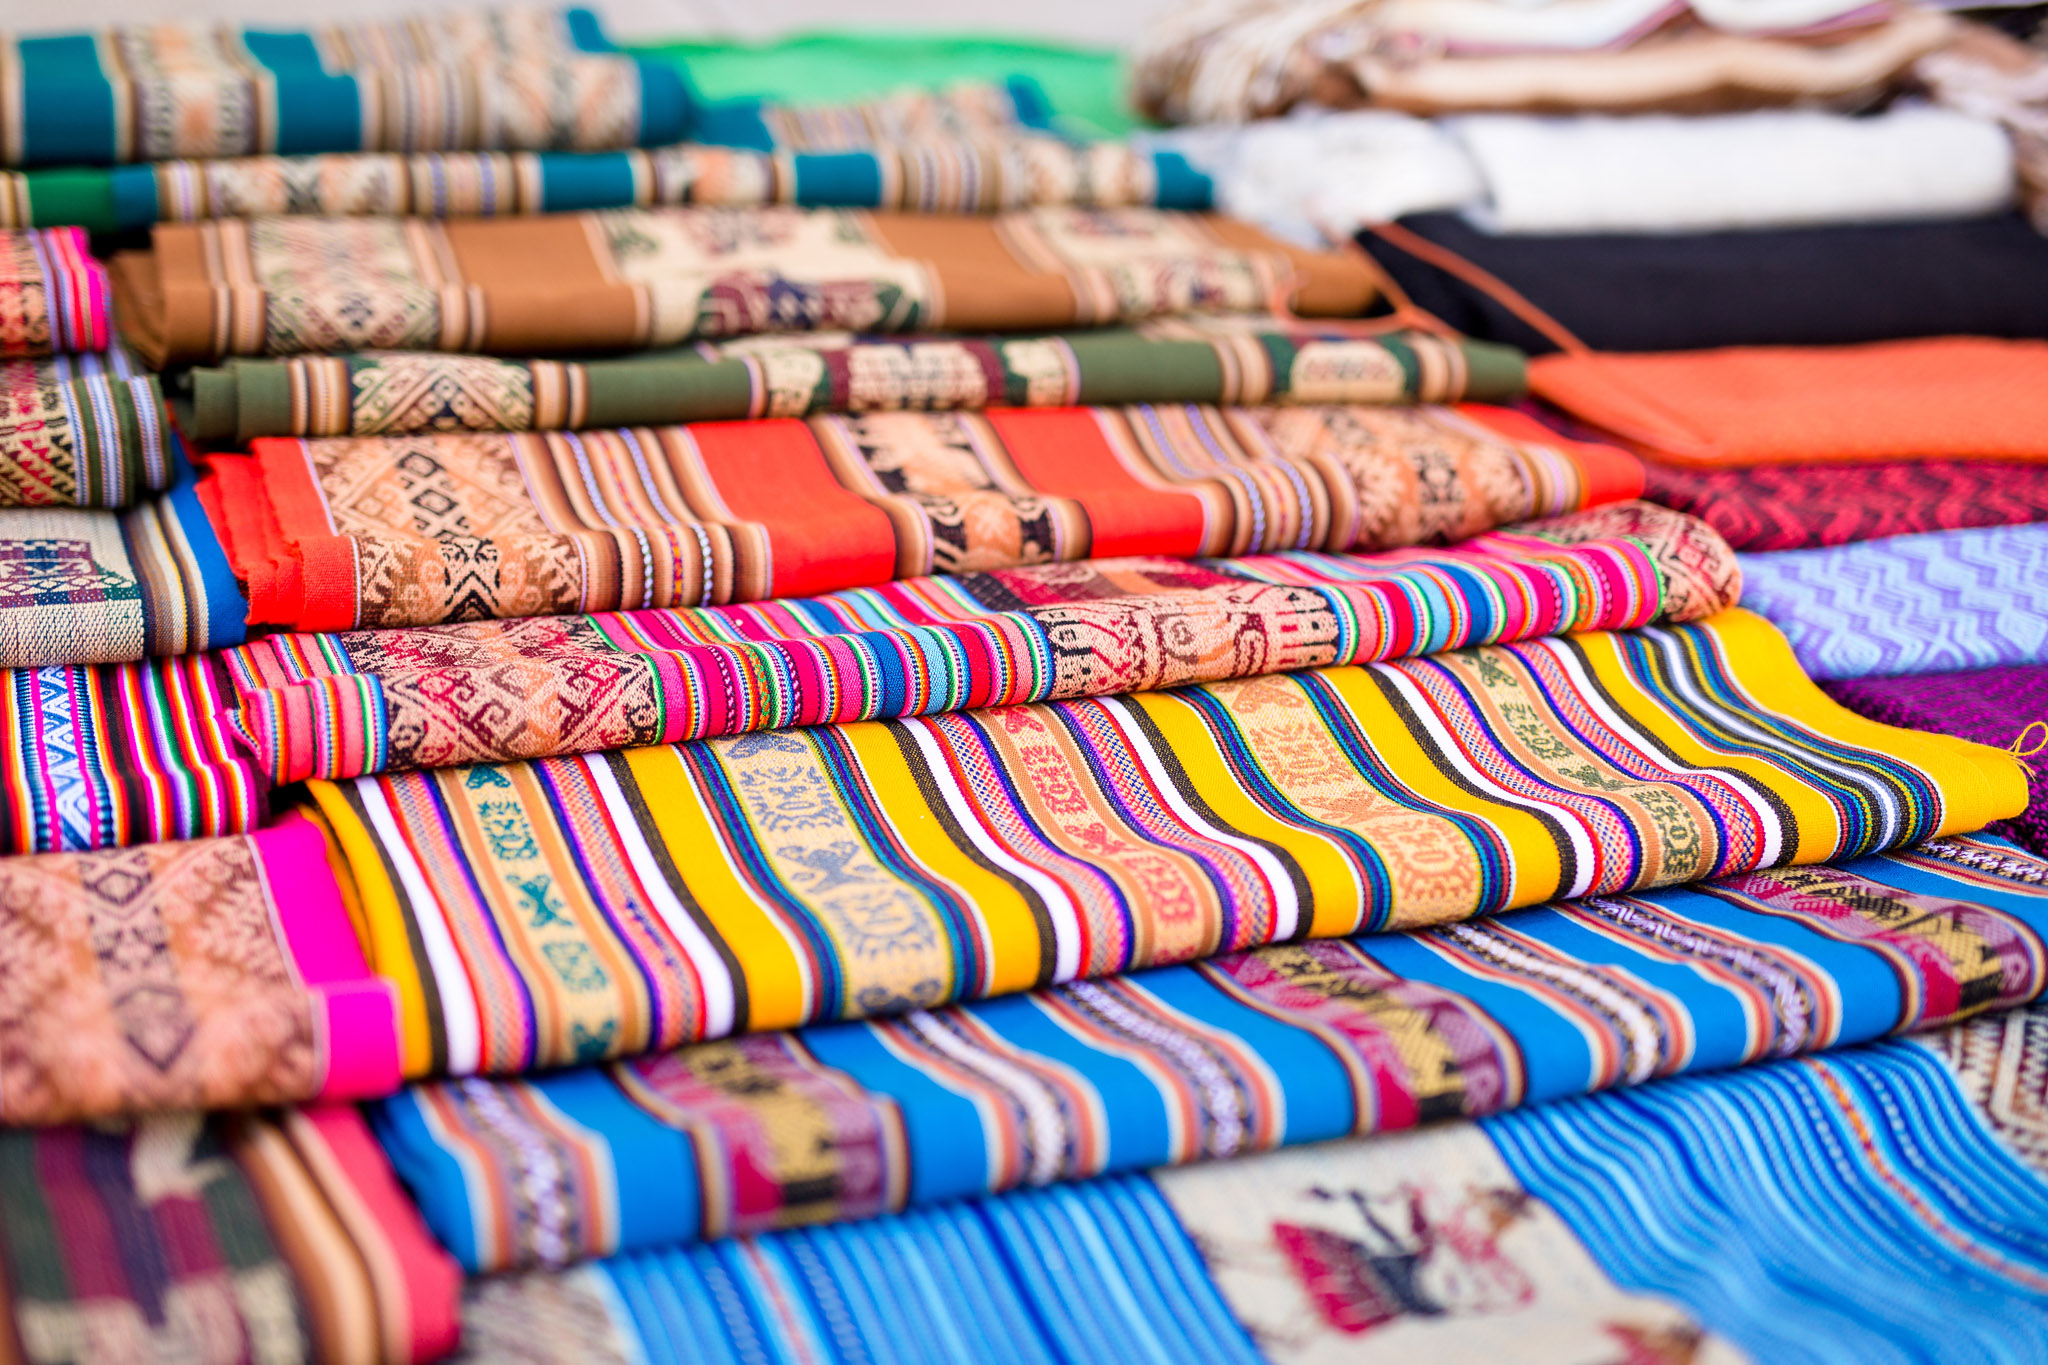 And just look at those fabrics. We couldn't resist and bought a tablecloth.